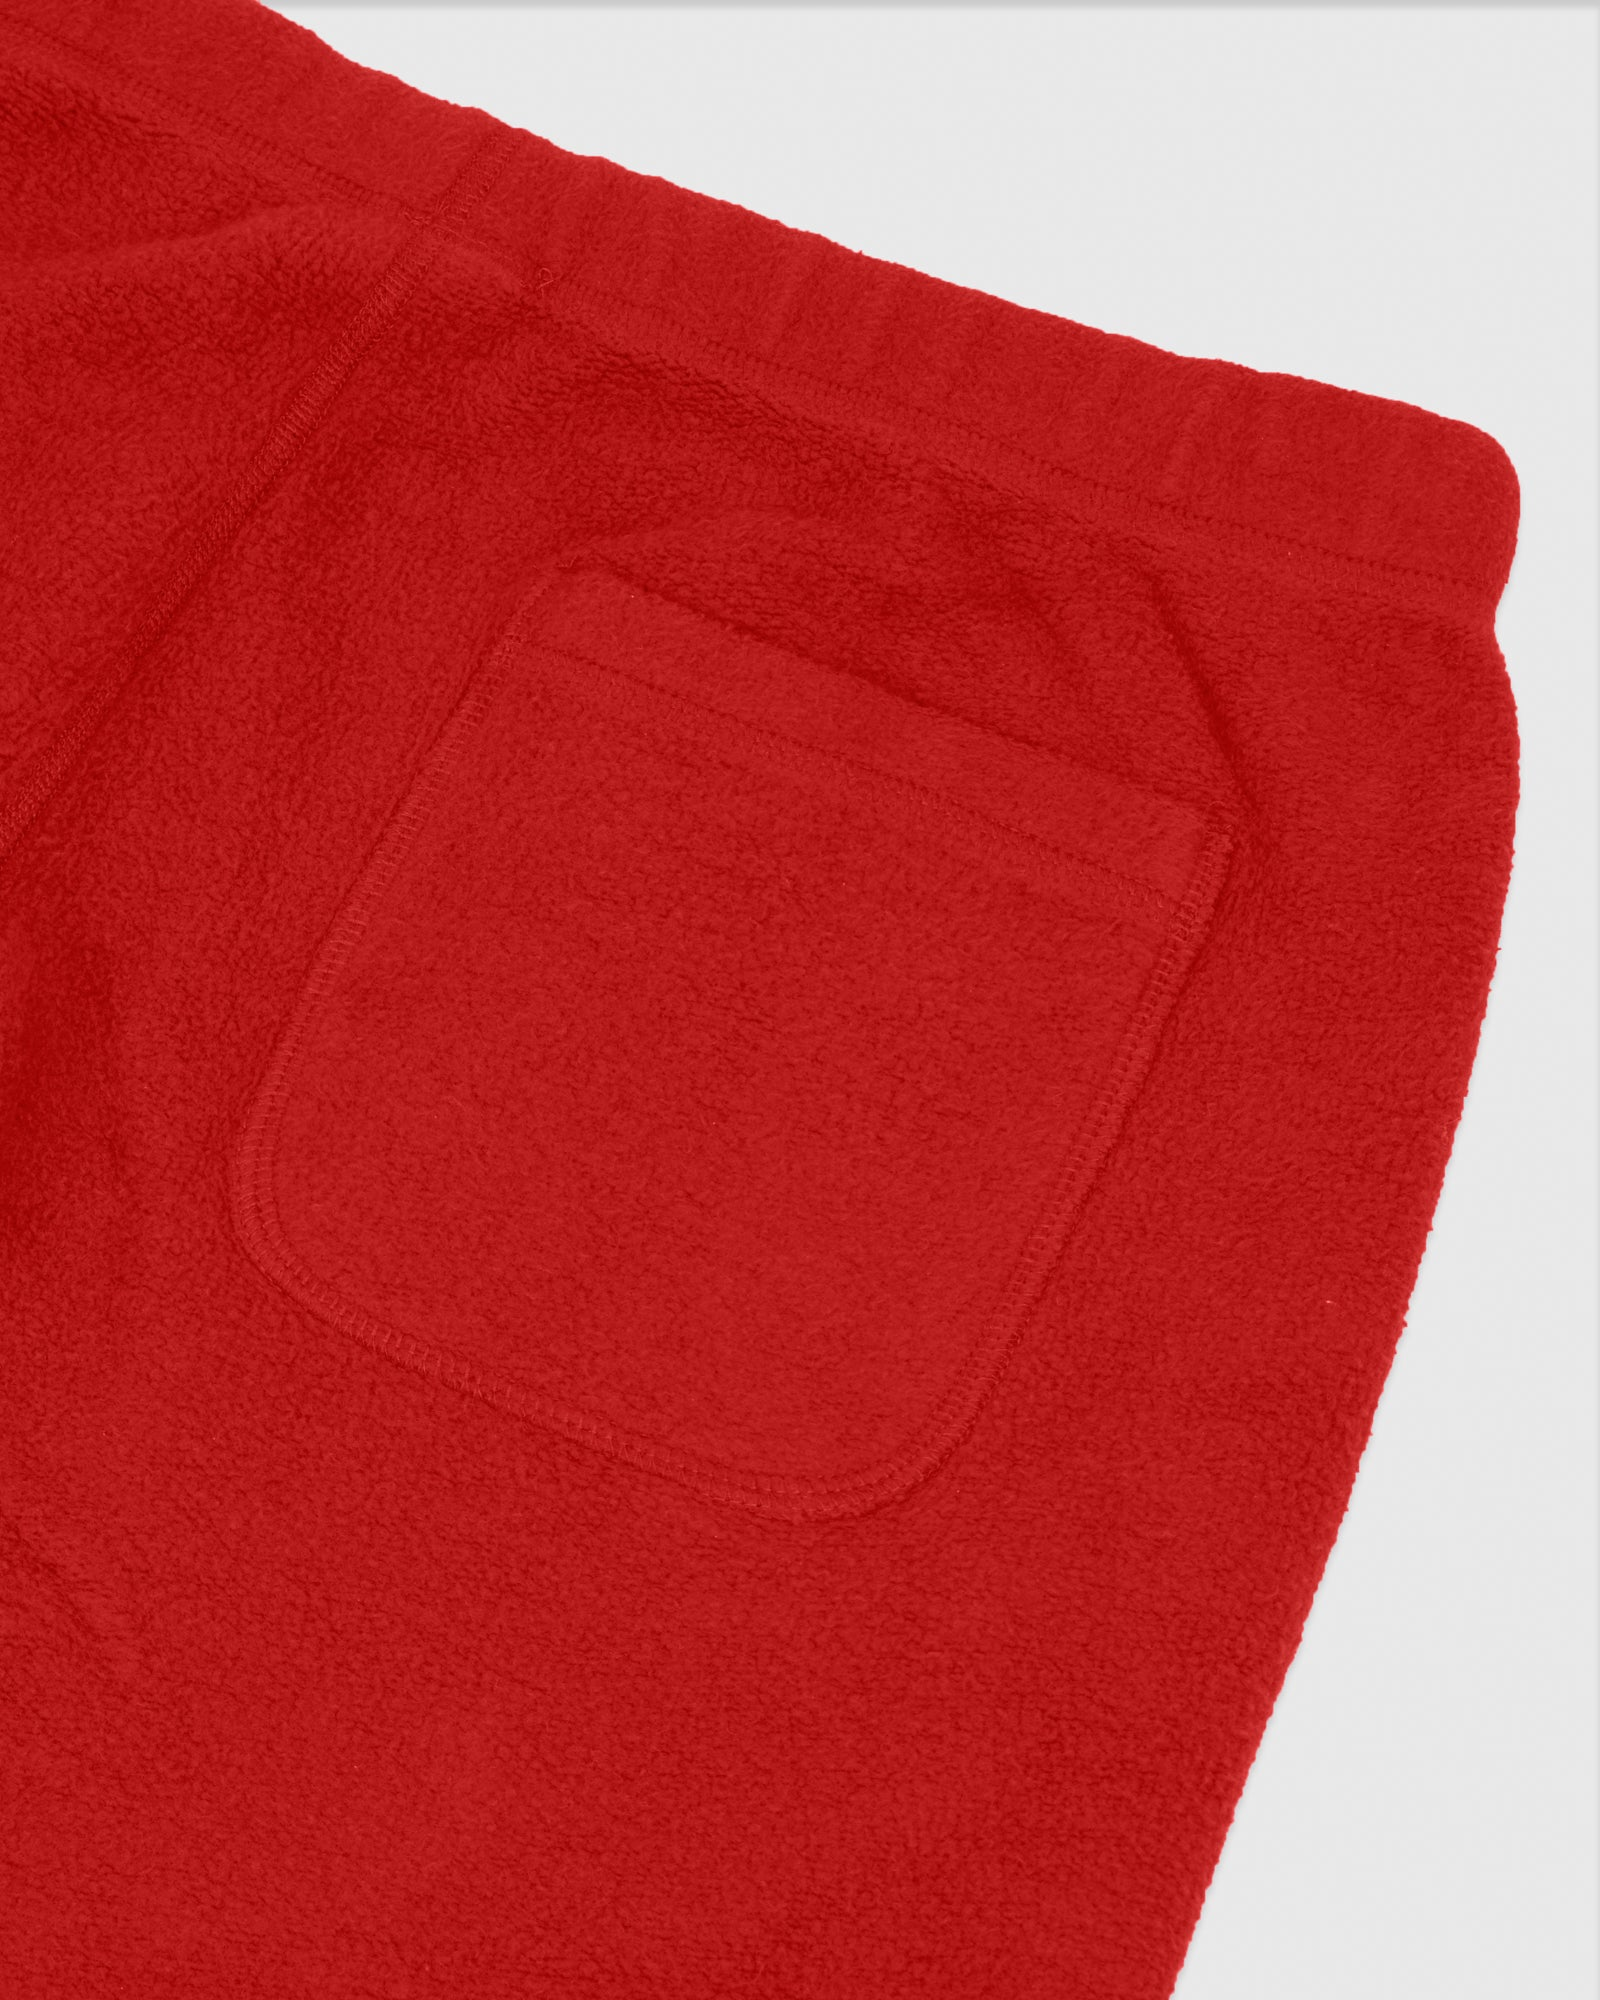 REVERSE FLEECE SWEATPANT - RED IMAGE #4